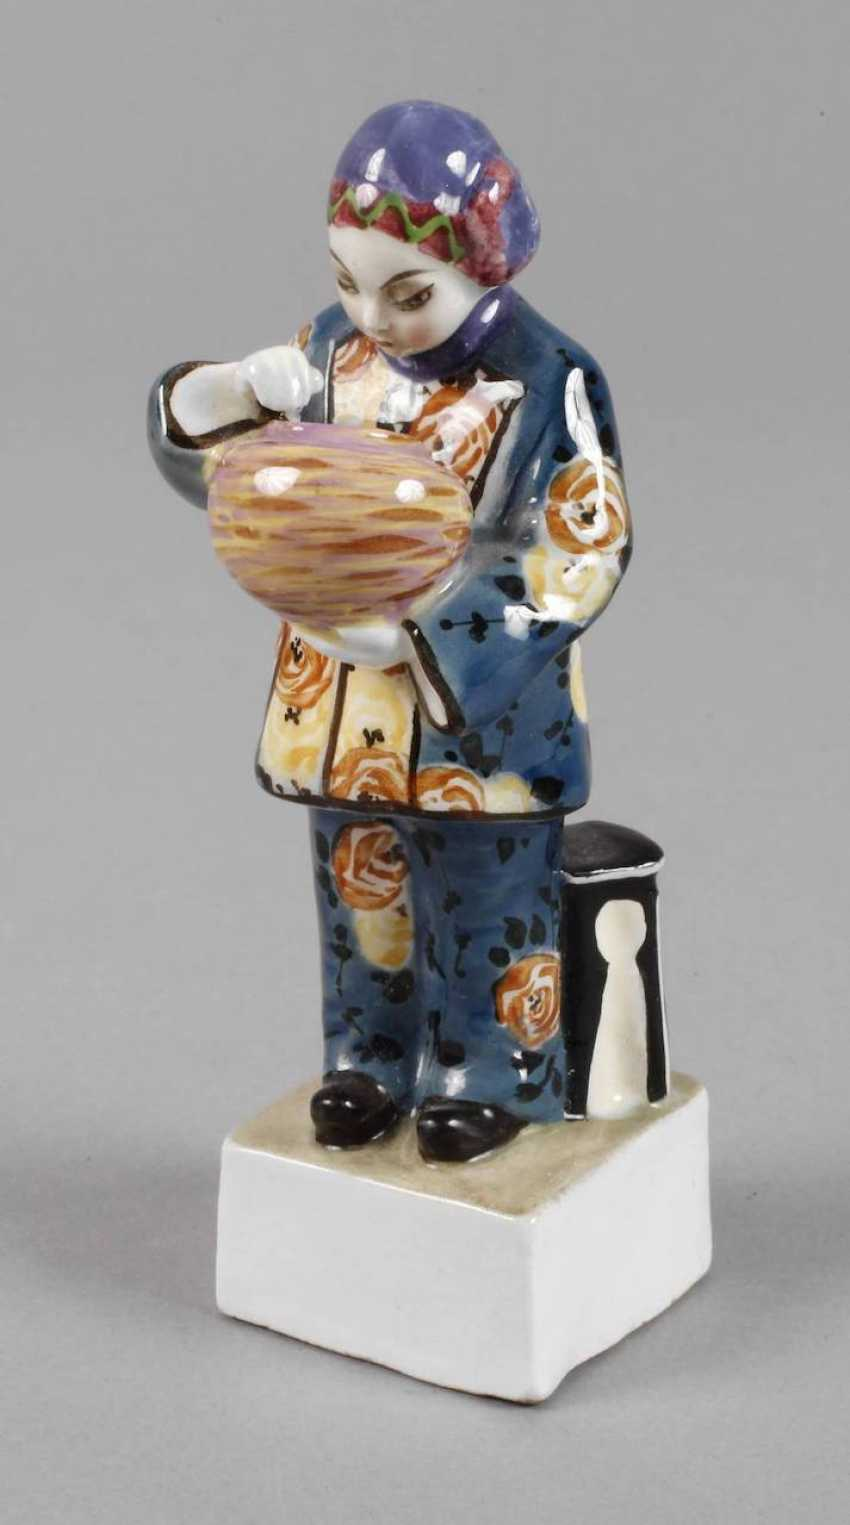 Small figure of Chinese woman with Vase - photo 1